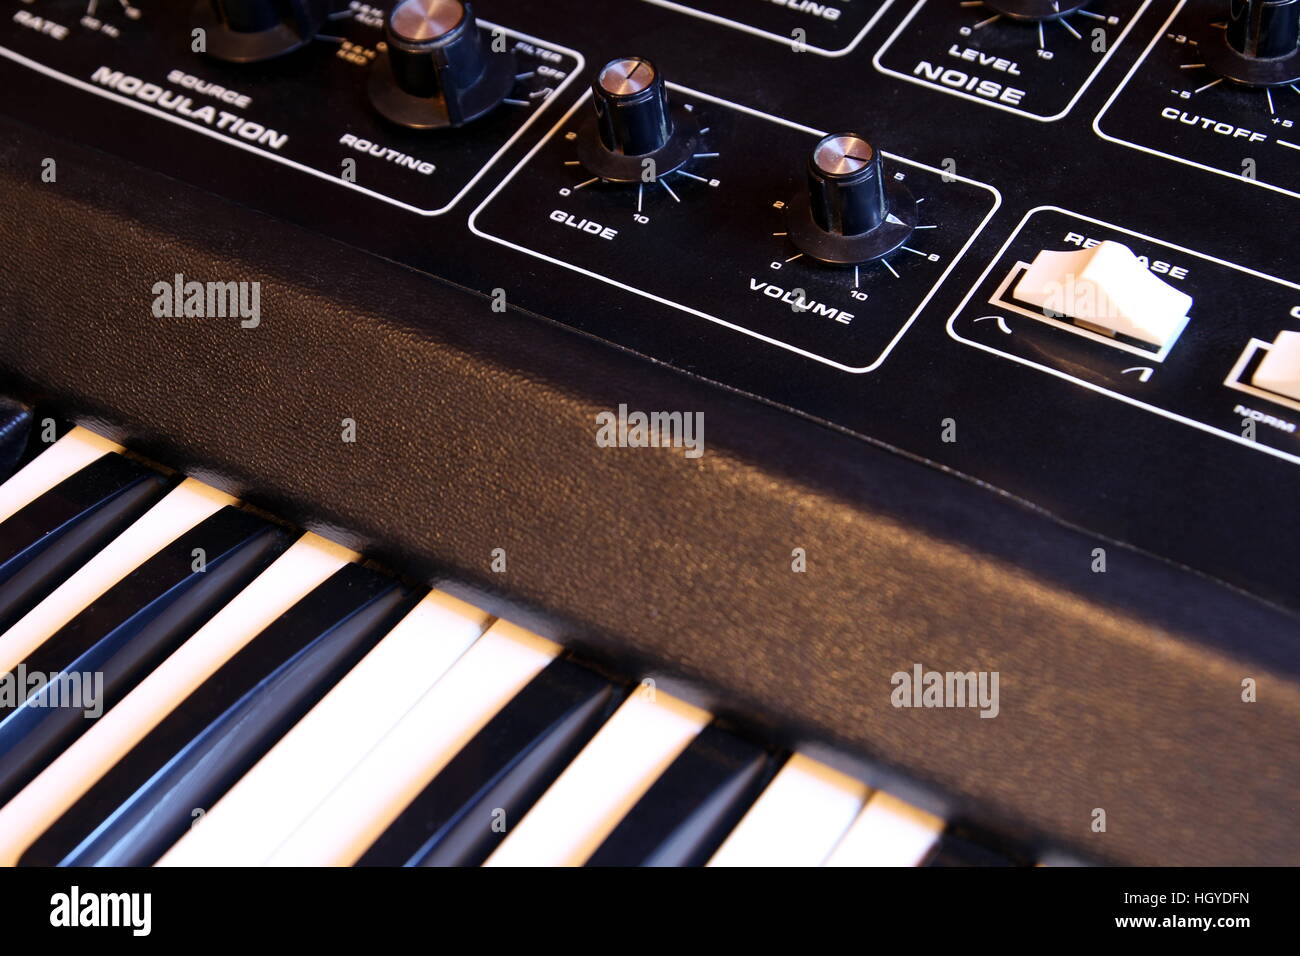 Closeup of keyboard and controls of a retro analogue synthesizer - Stock Image